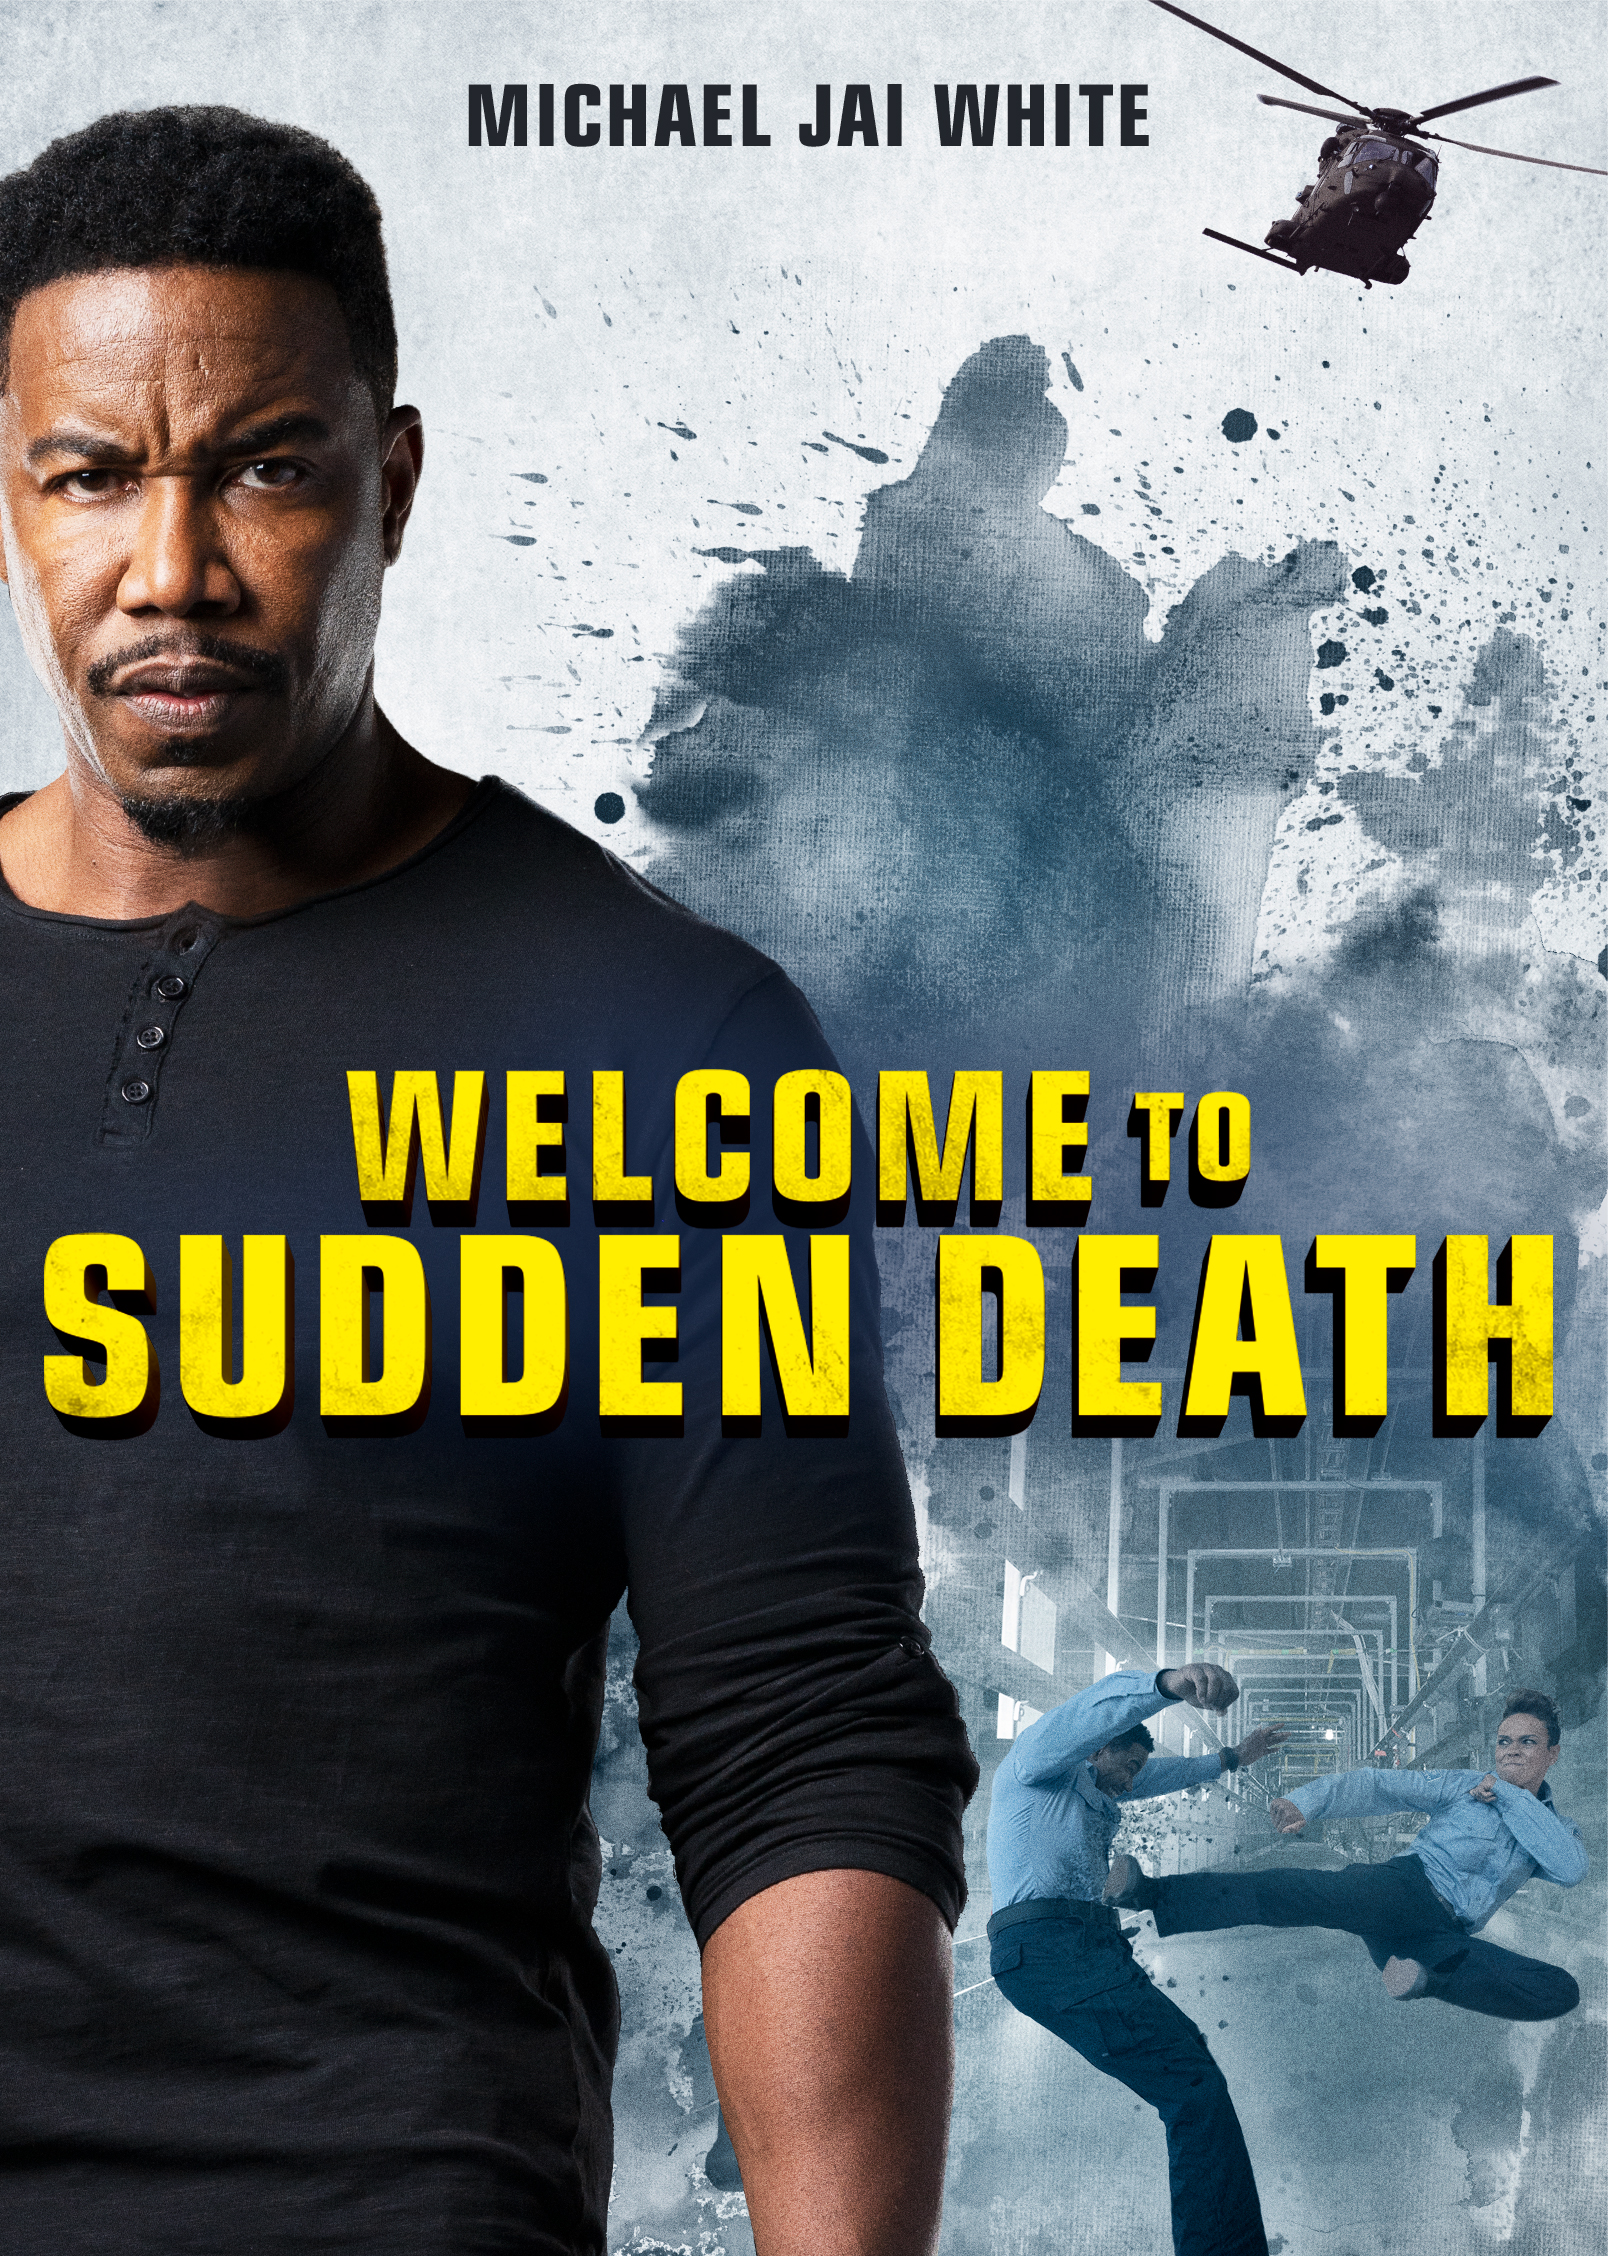 Welcome to Sudden Death (2020) Bengali Dubbed (Voice Over) BluRay 720p [Full Movie] 1XBET